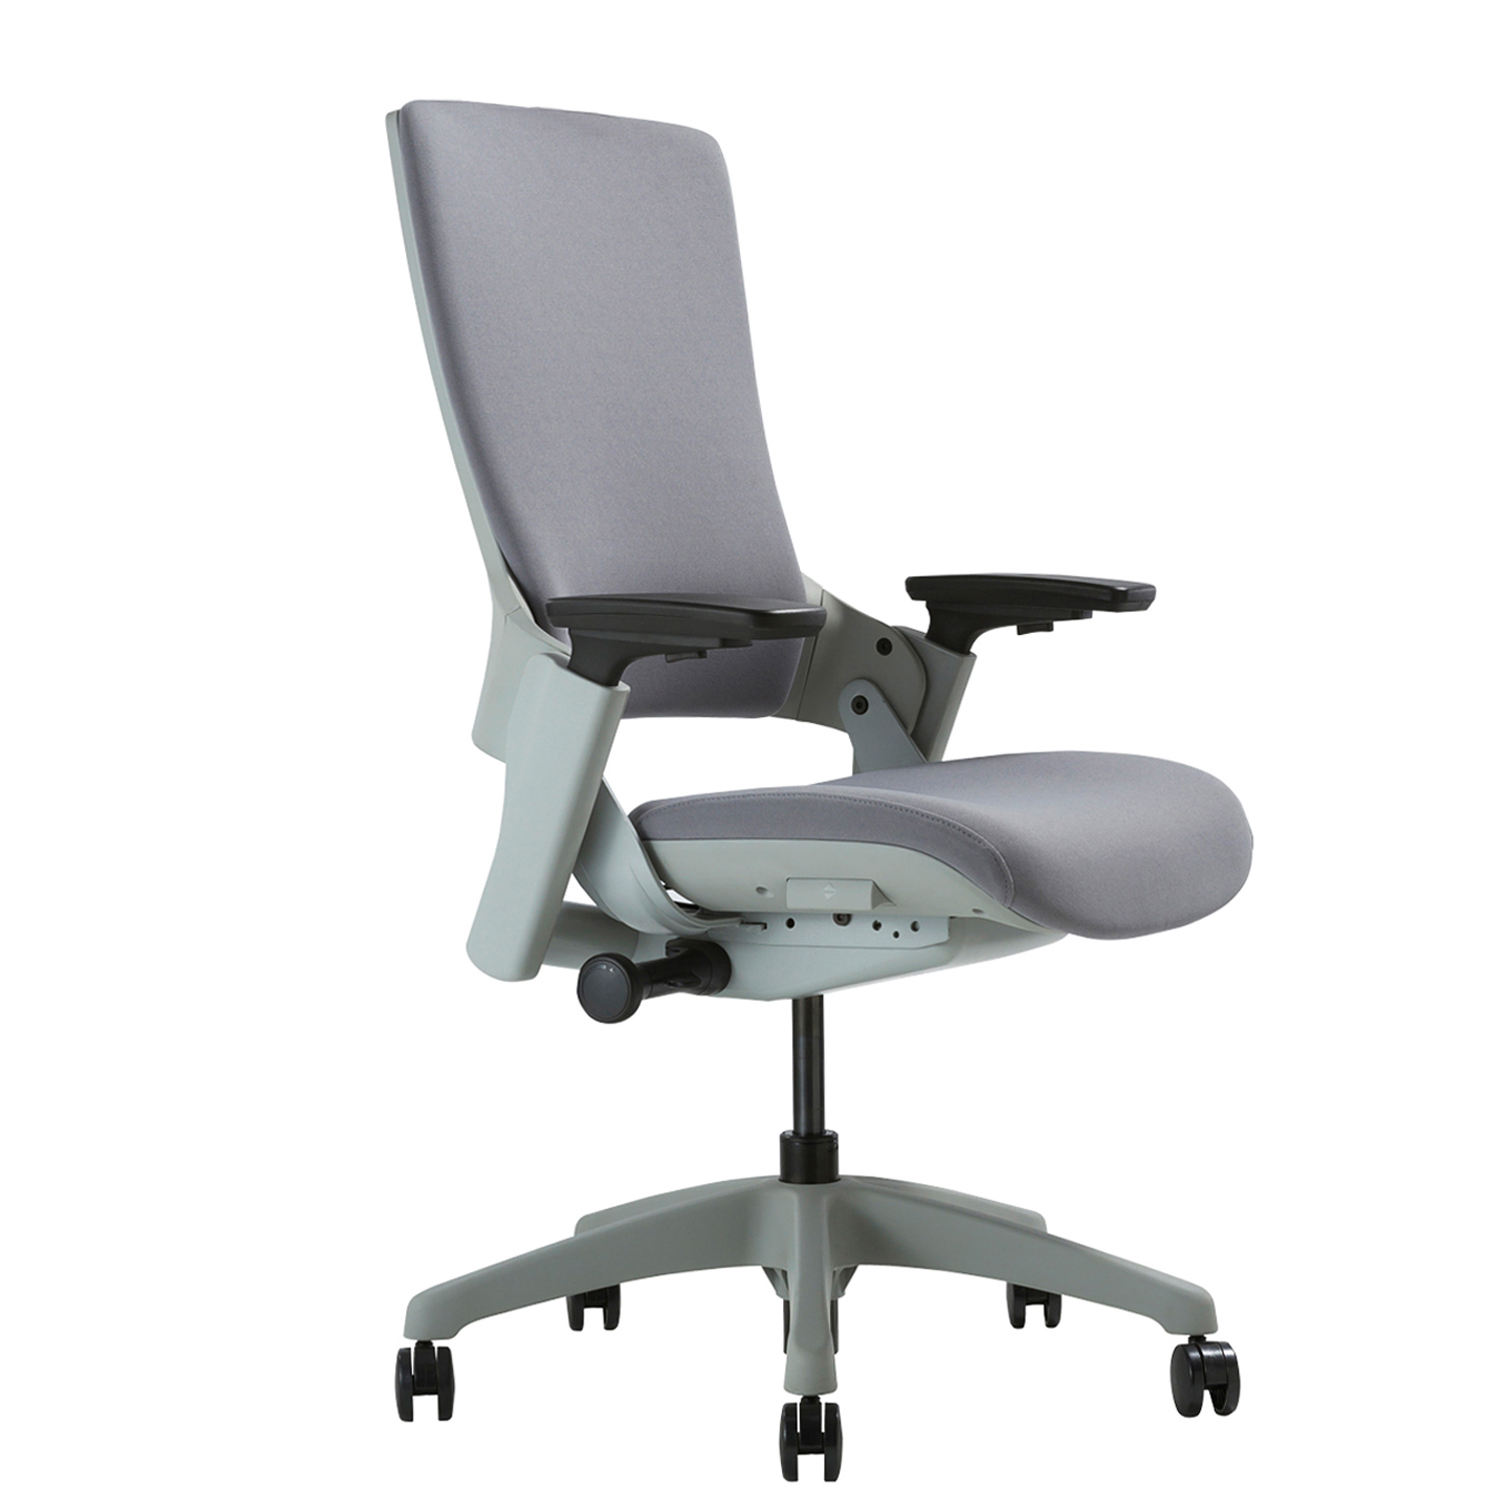 Cream-coloured Solid Base Revolving Moveable Office Chair